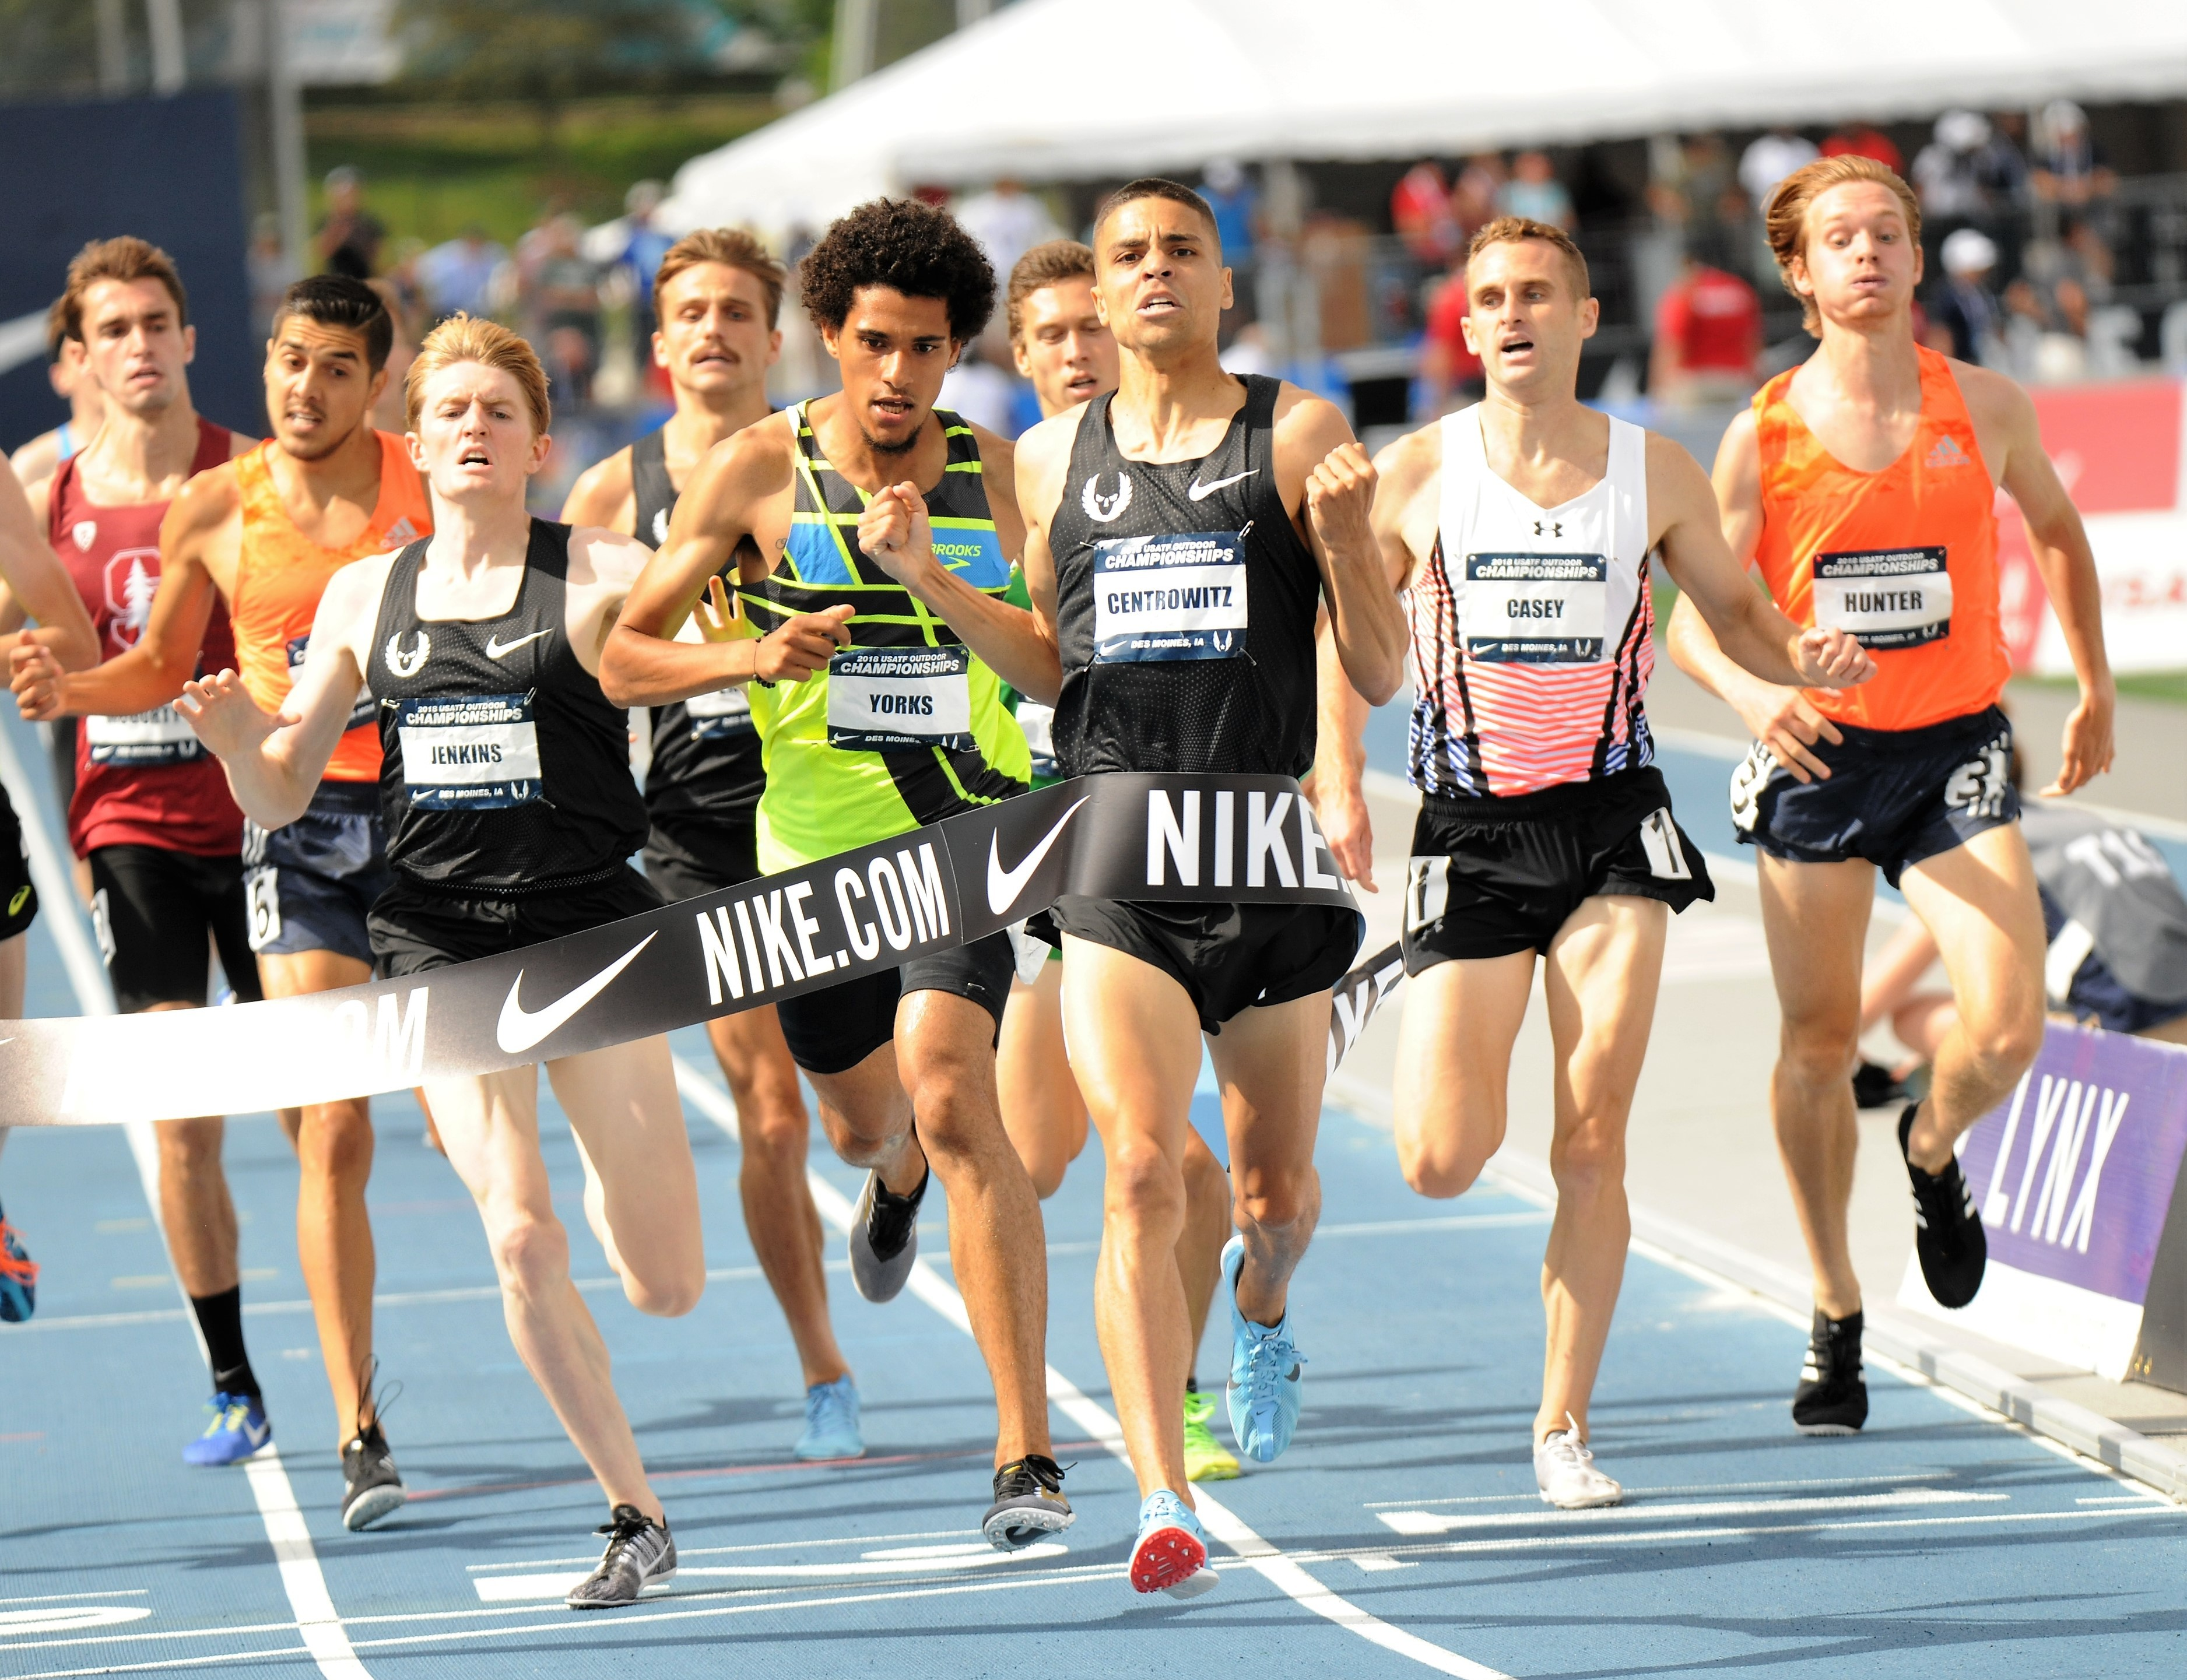 Your guide to this year's Prefontaine Classic